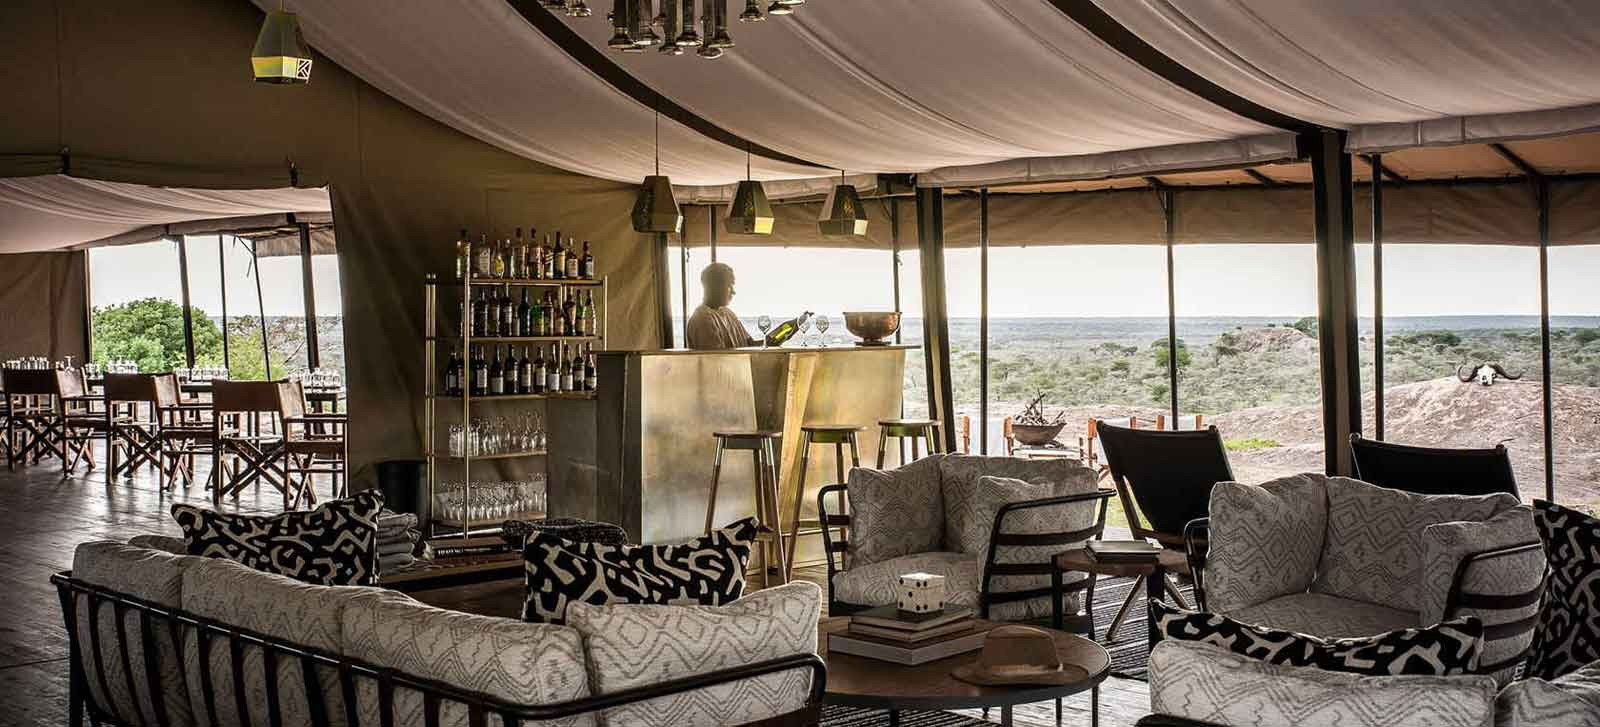 Kichakani Serengeti Camp Lounge